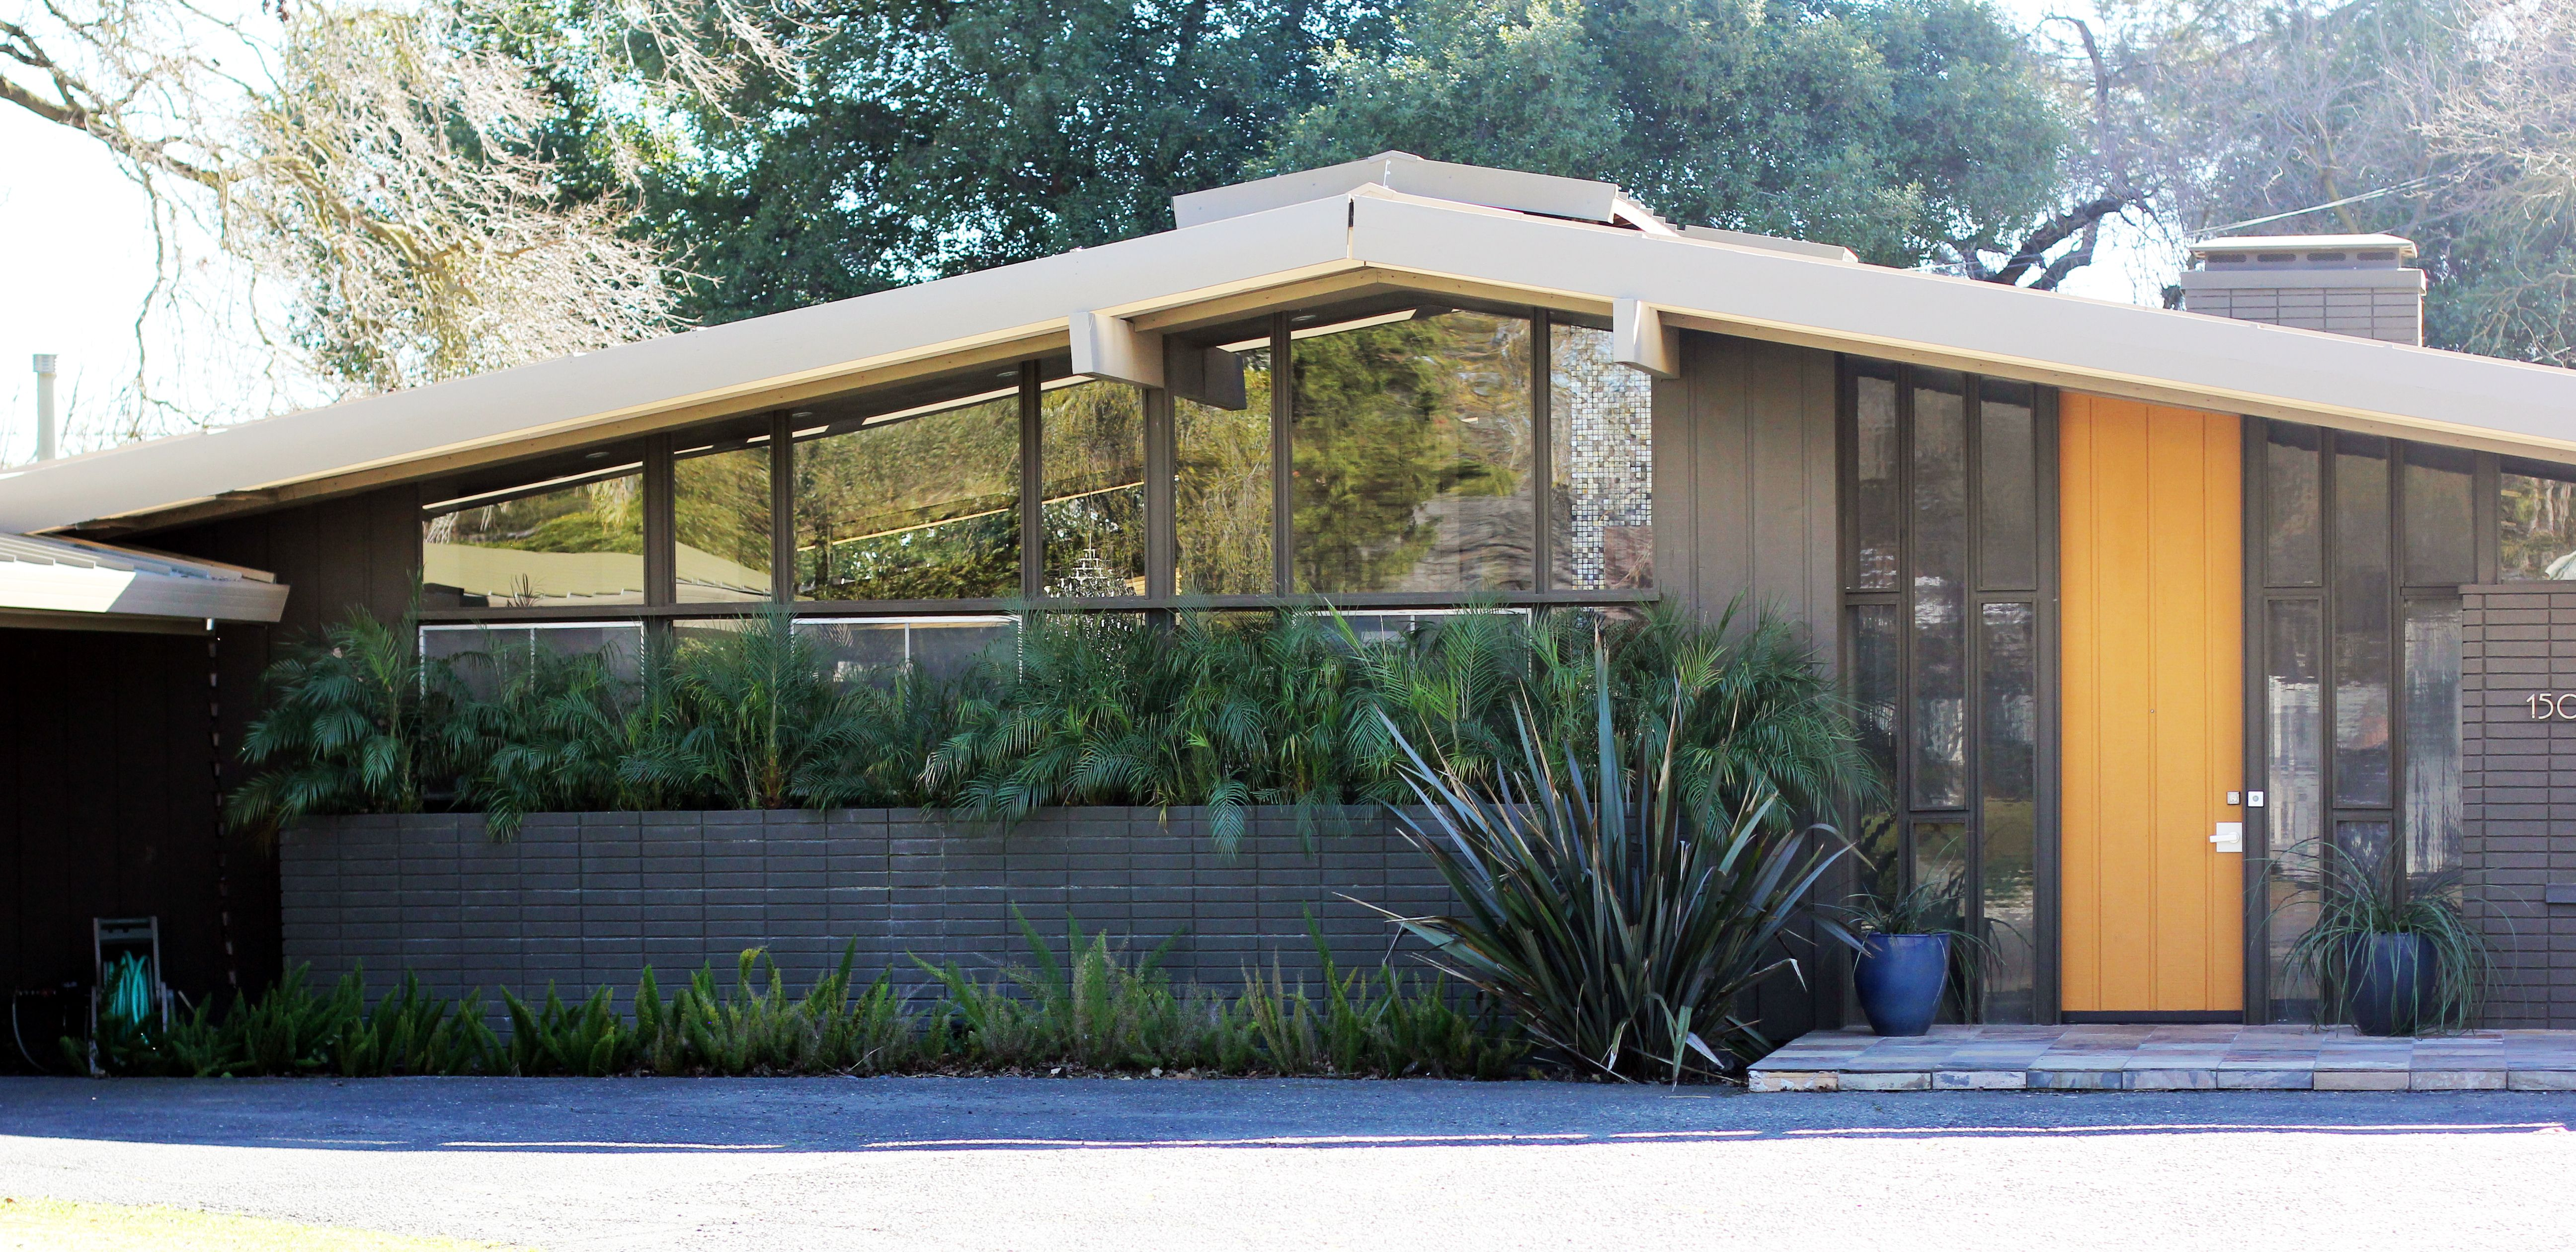 Mid century modern homes for sale in florida softlaw co